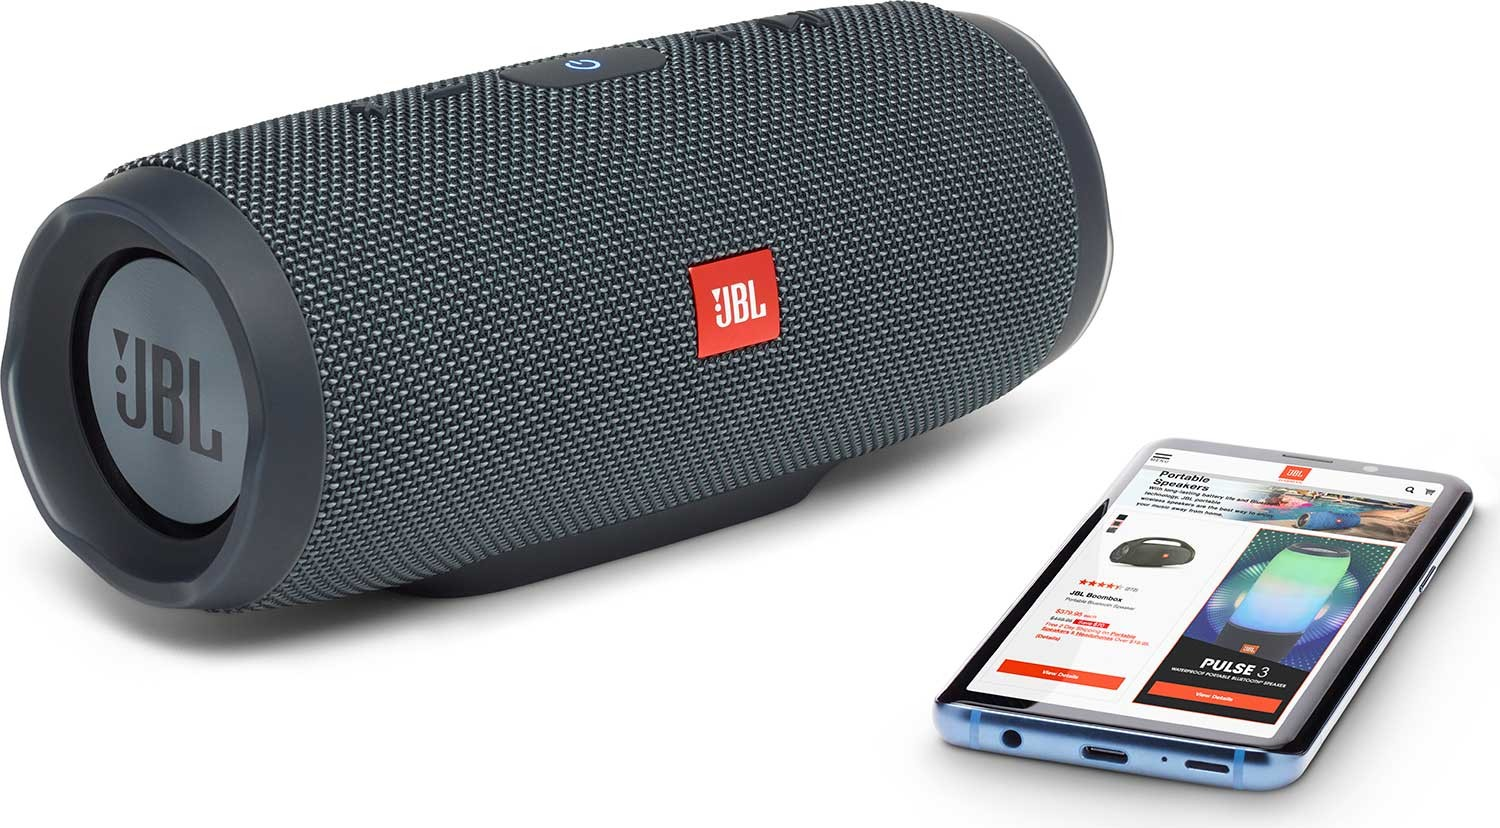 Přenosný reproduktor JBL Charge Essential